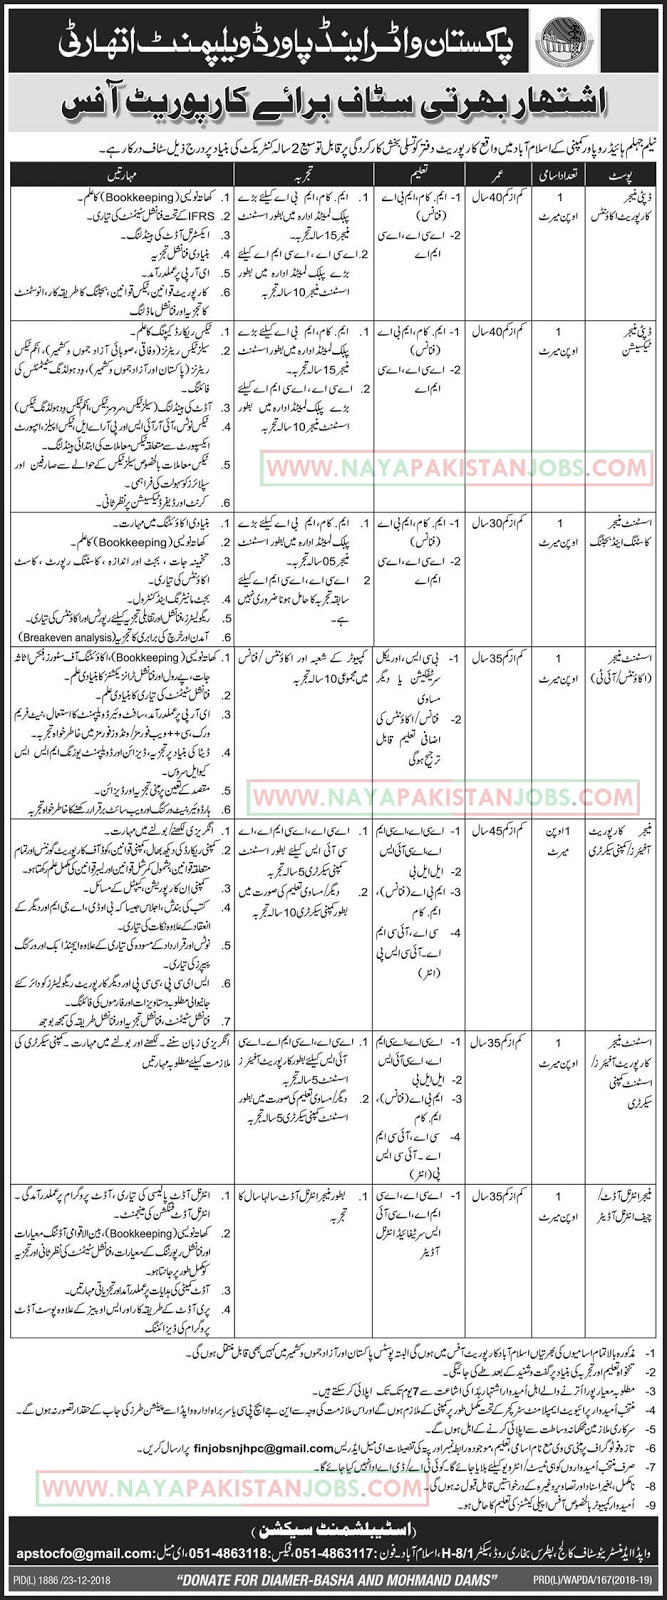 WAPDA Office Islamabad Jobs Dec 2018 | WAPDA Office Jobs, New Wapda Jobs 2019